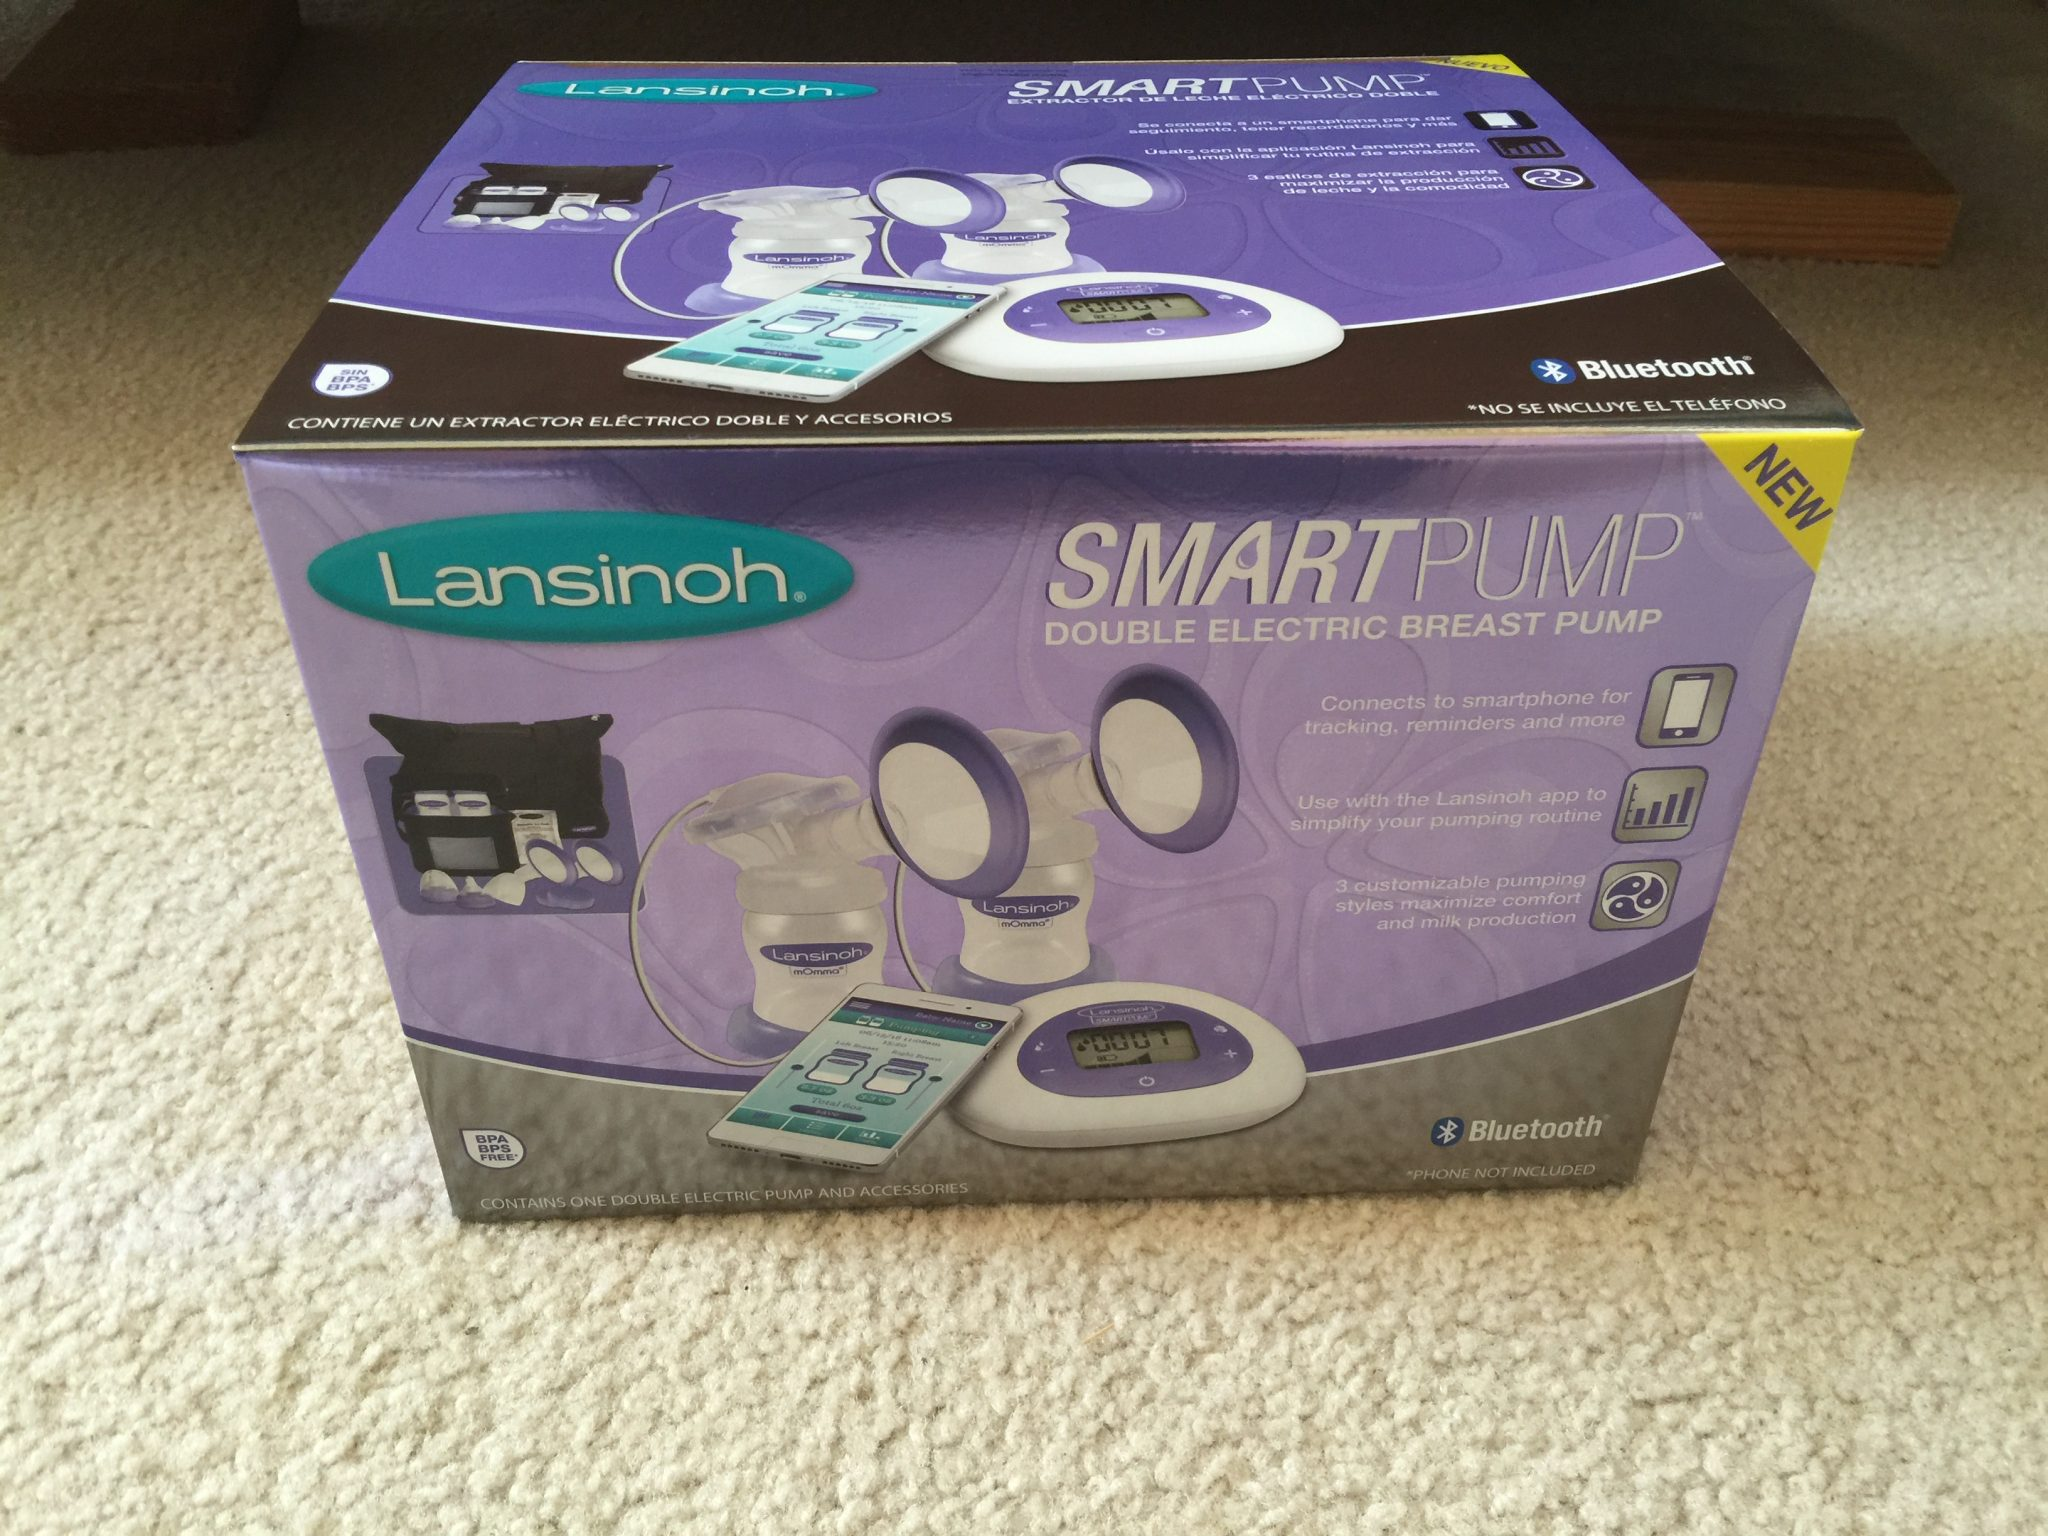 Lansinoh Smartpump Review Giveaway Diary Of A Fit Mommy